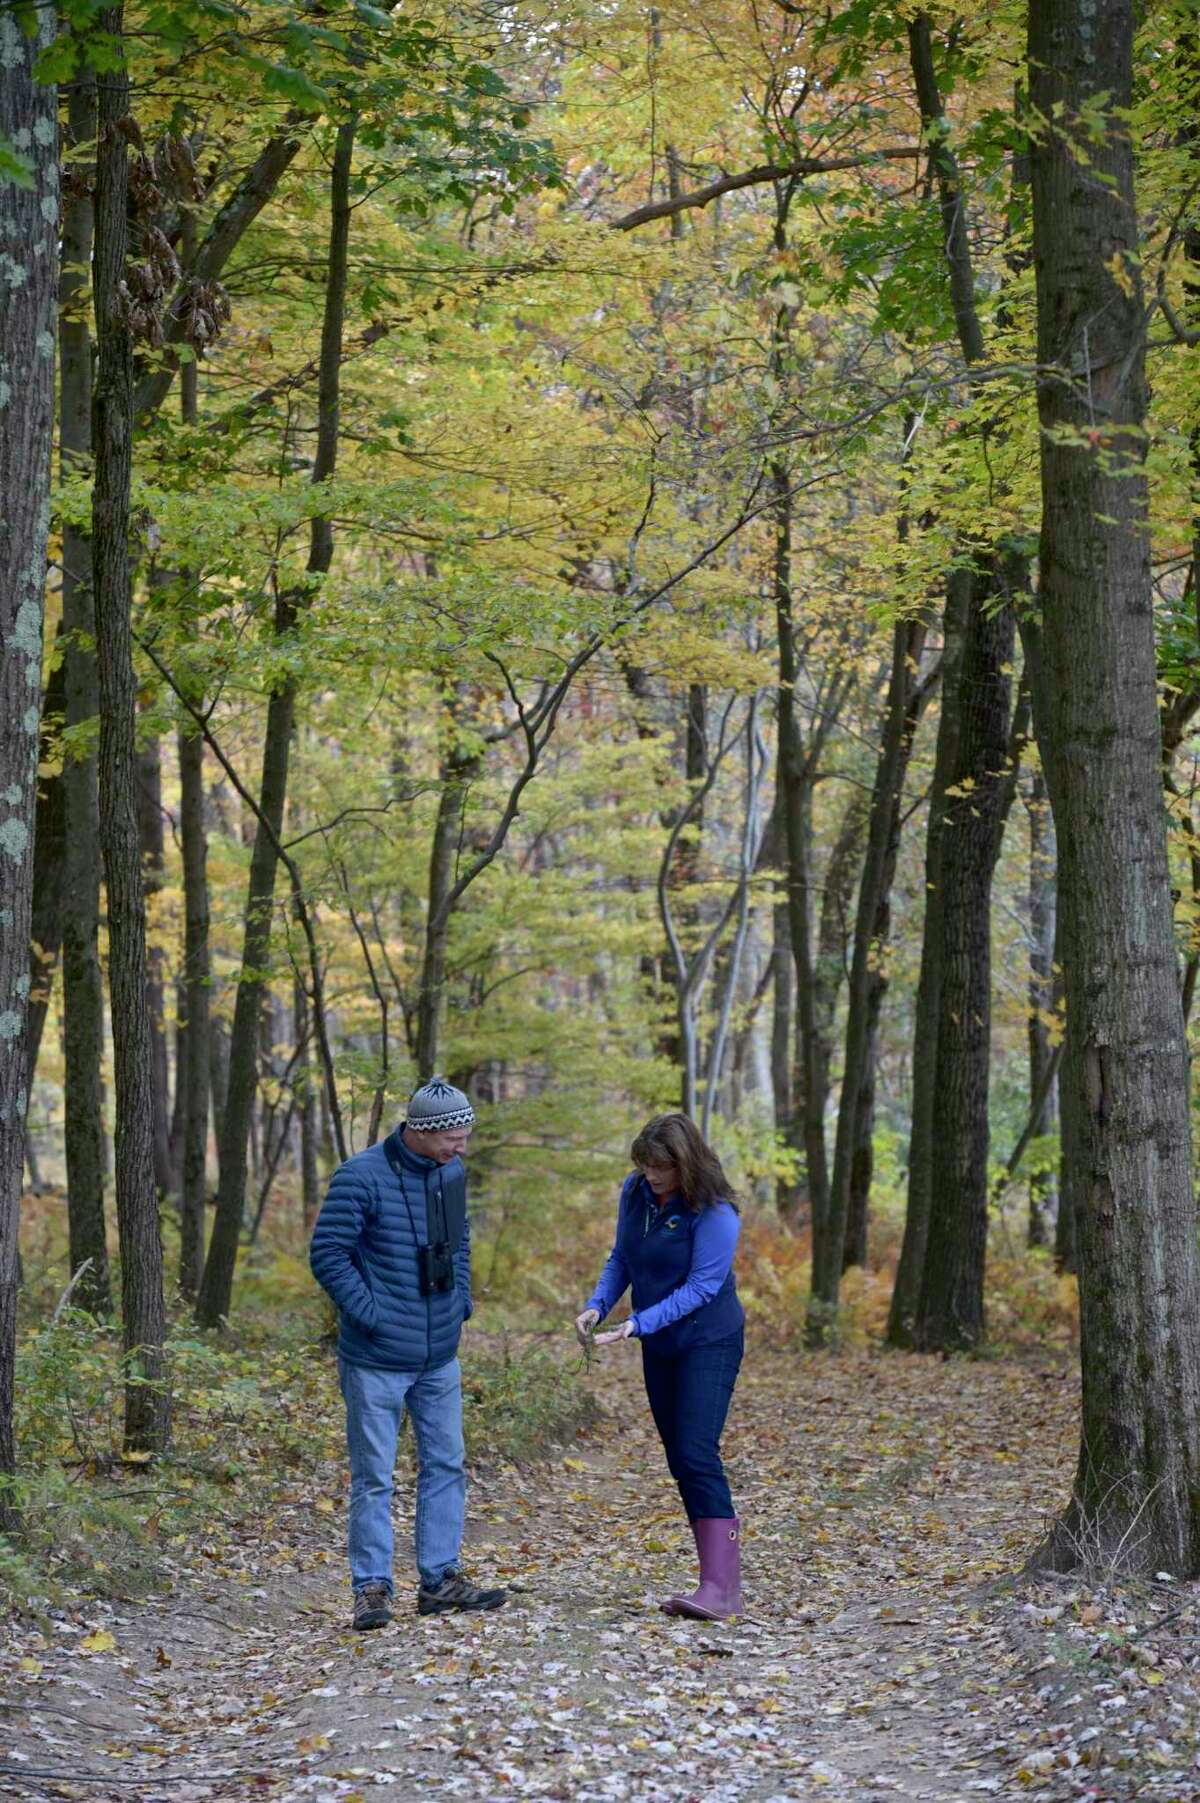 Director Cathy Hagadorn, right, and biologist Jim Arrigoni on one of the trails at Deer Pond Farm in Sherman. Like many places in the state, dear Pond has lost a number of trees to the invasive emerald ash borer. They are using the tree losses to create new spaces that will attract birds. Wednesday, October 16, 2019, in Sherman, Conn.